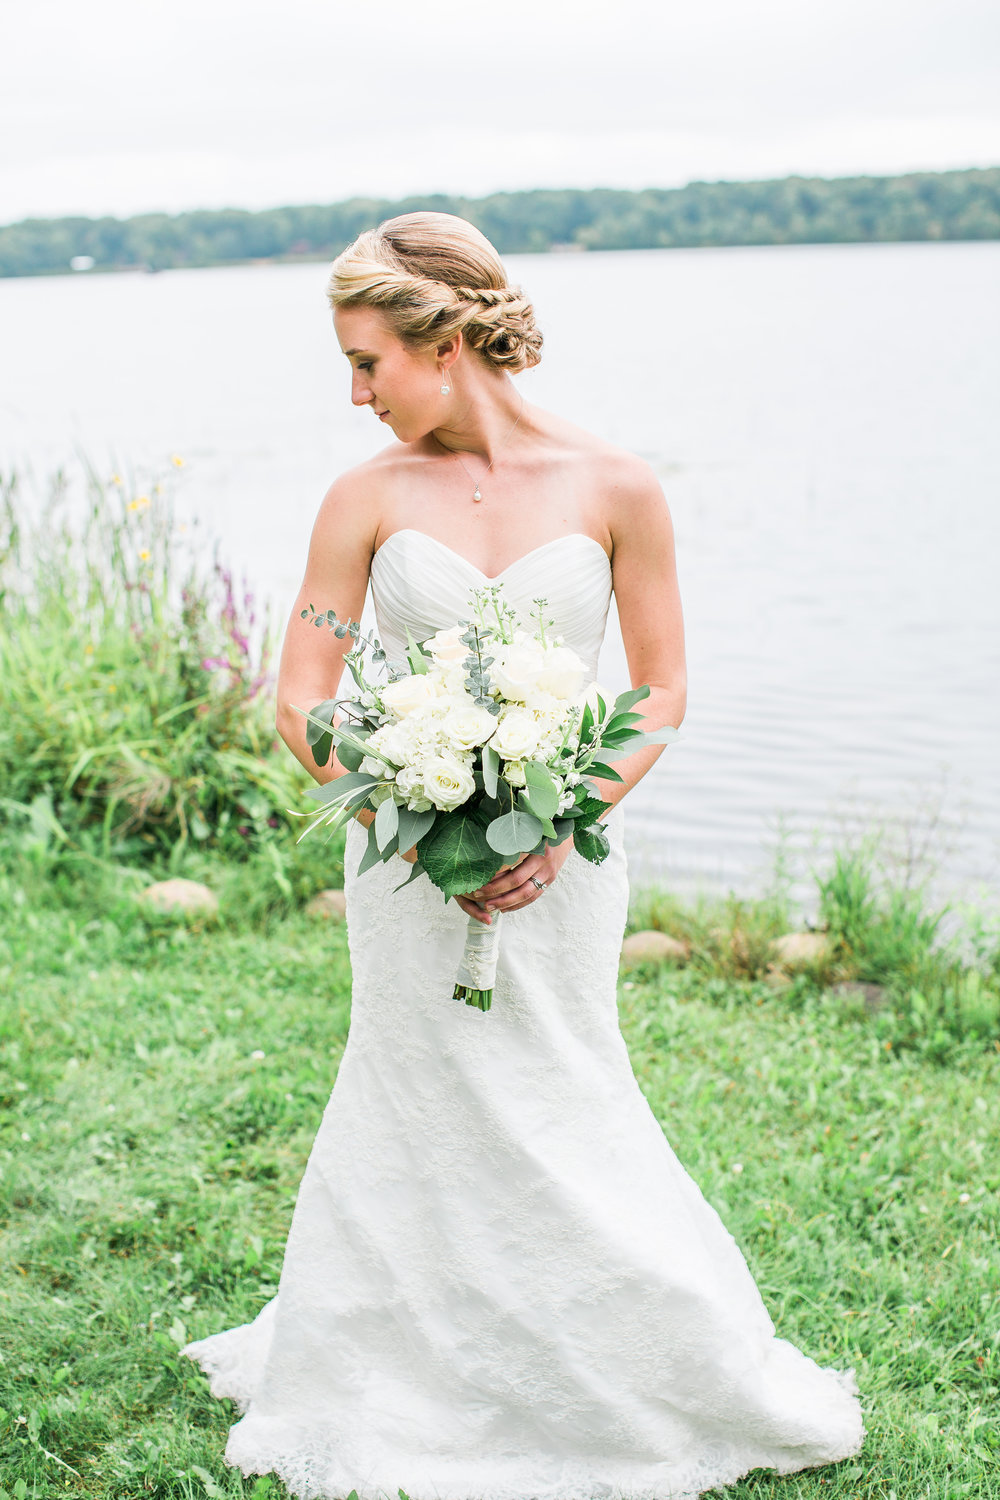 Bridal portrait lakeside Nisswa Minnesota wedding Minnesota wedding photography Mallory Kiesow Photography